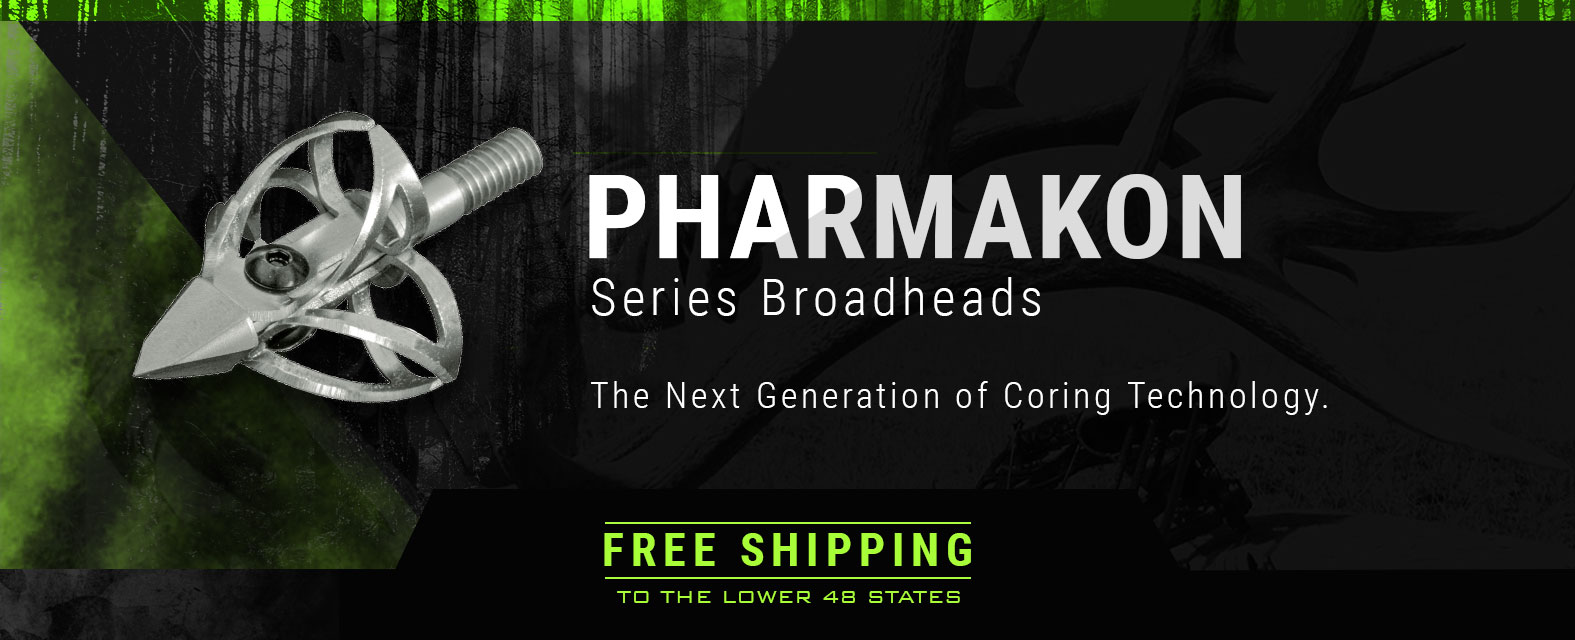 Pharmakon Series Broadheads - The Next Generation of Coring Technology